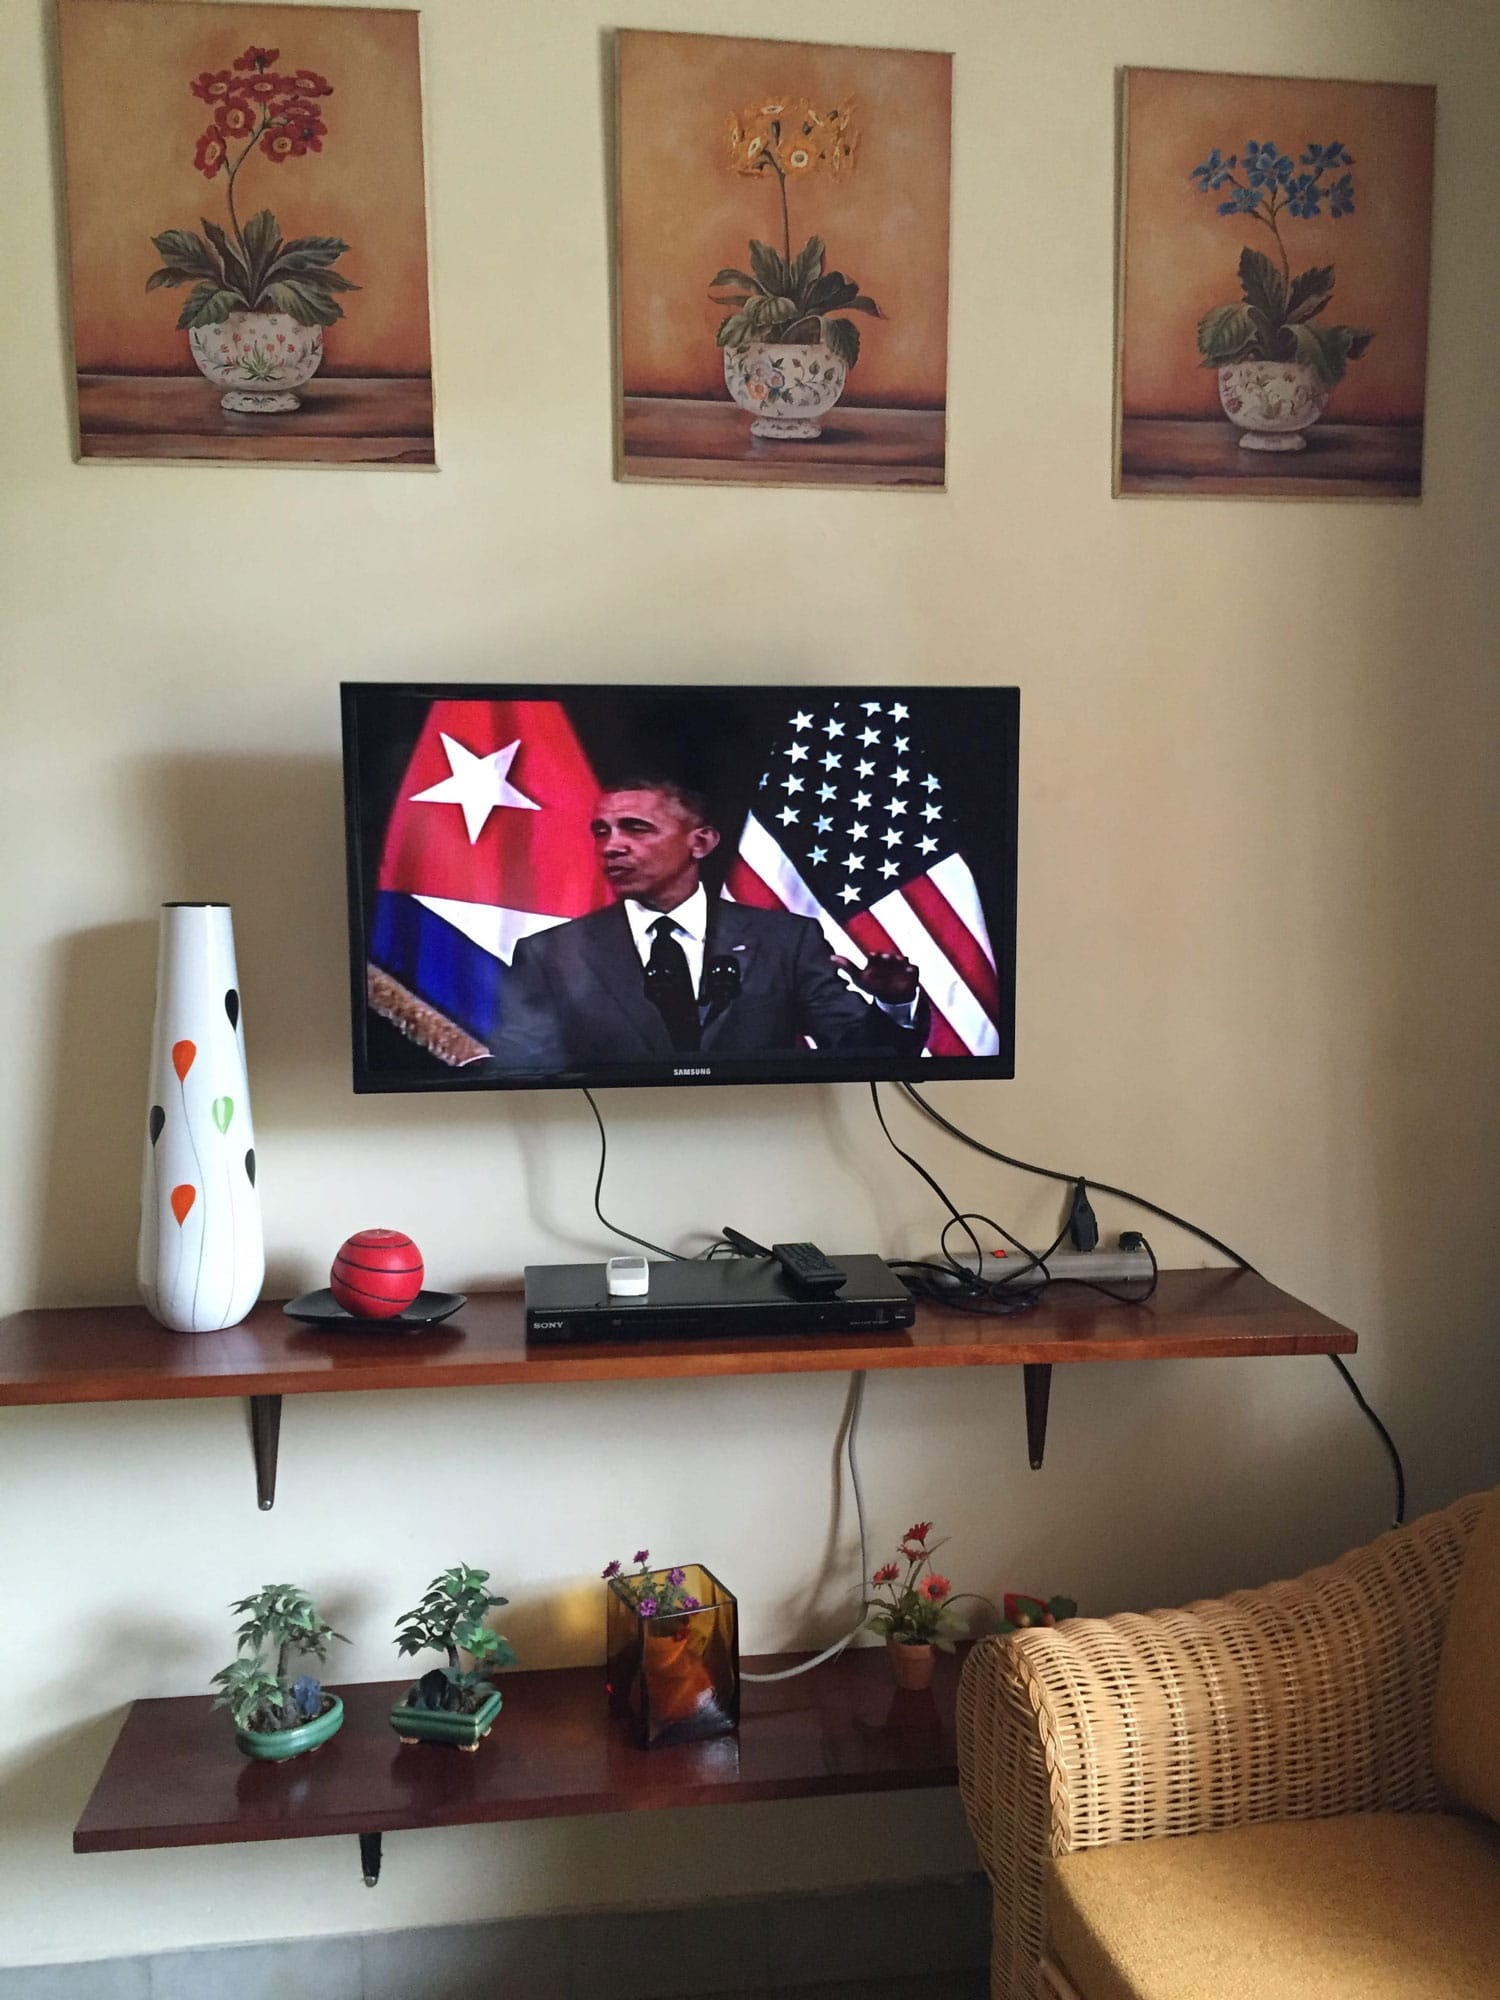 Watching President Obama on Cuban television